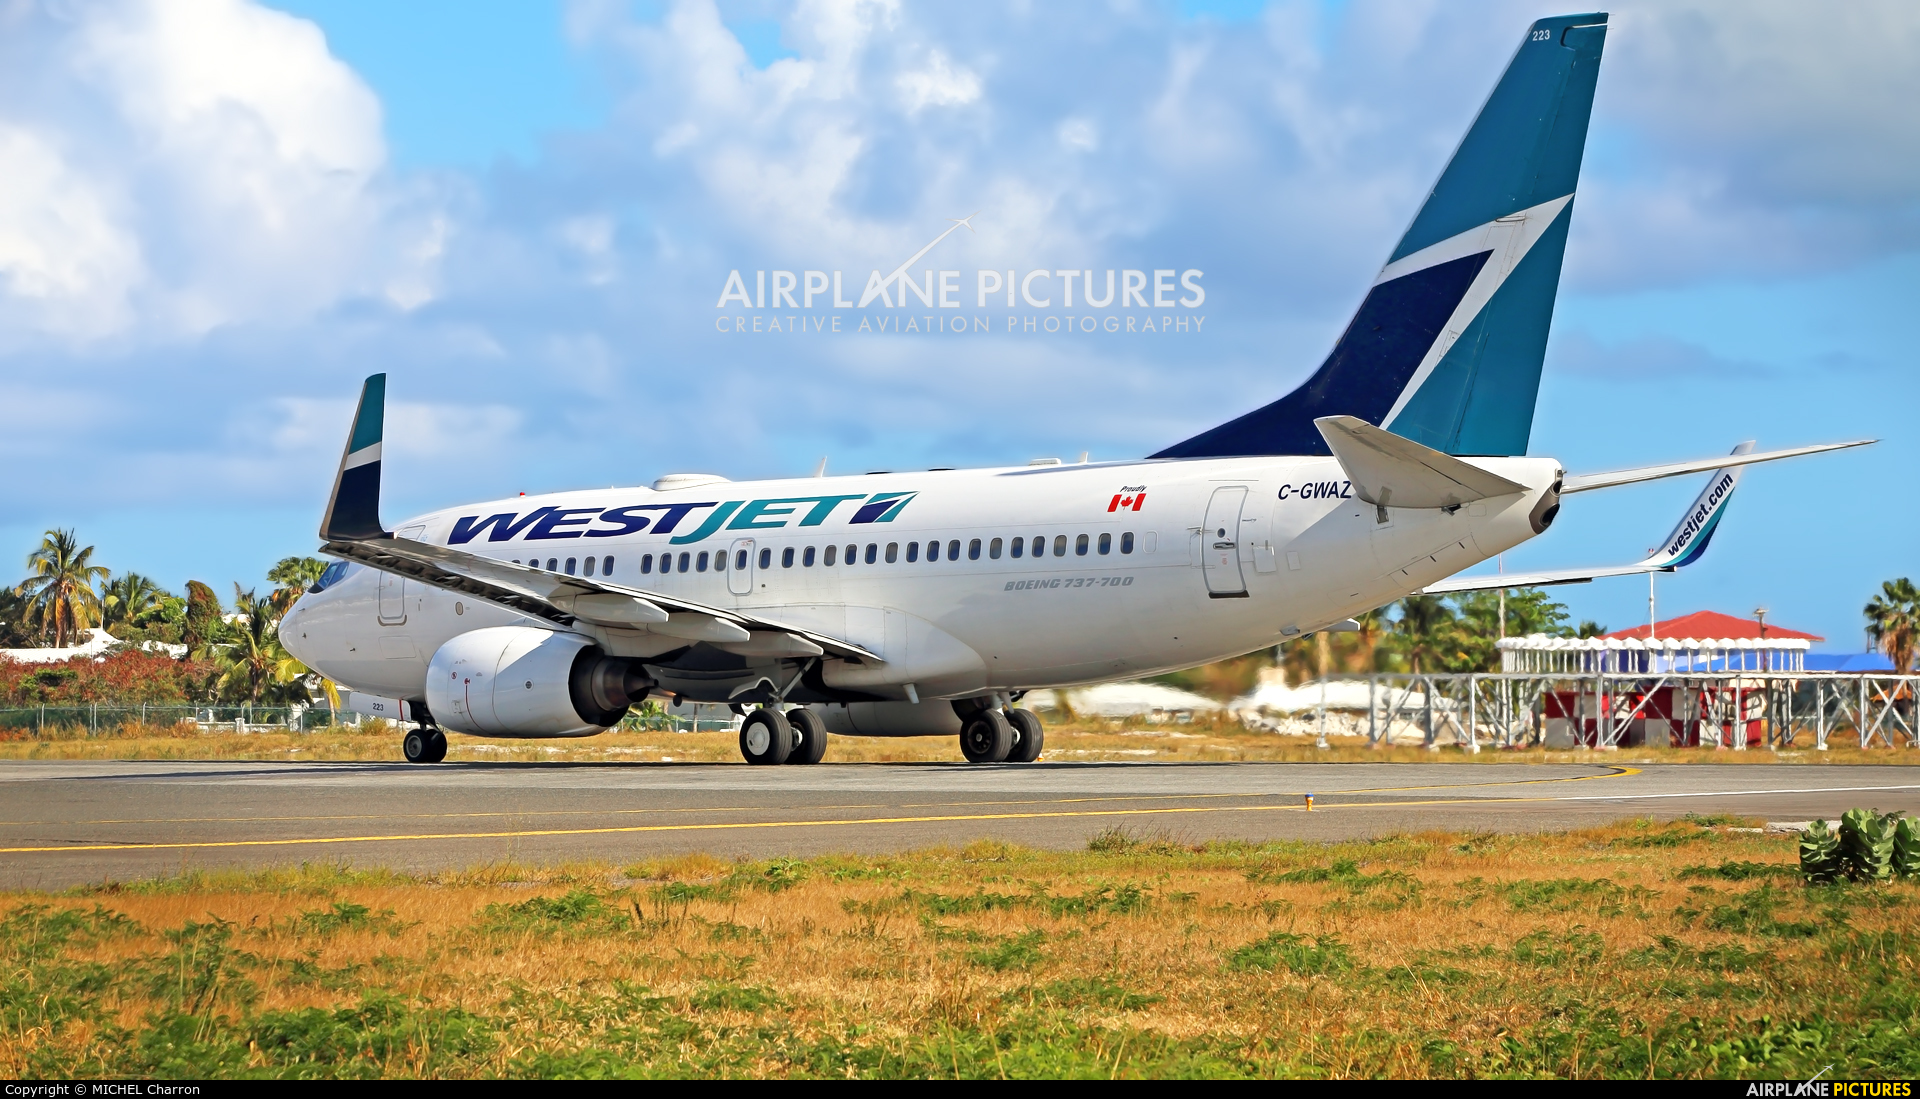 WestJet Airlines C-GWAZ aircraft at Sint Maarten - Princess Juliana Intl